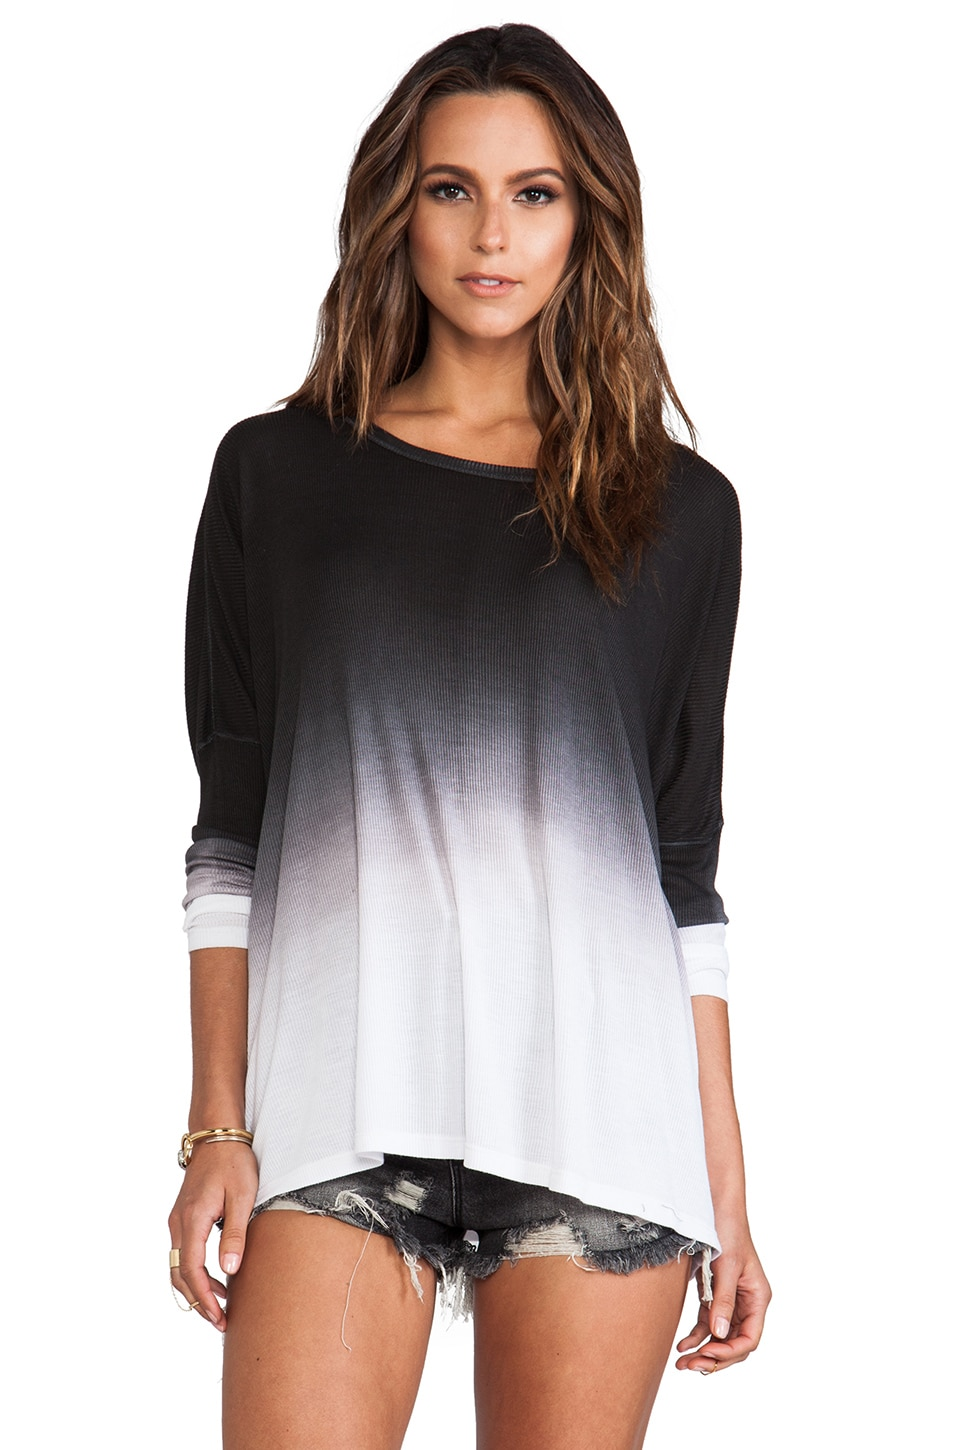 Saint Grace Omega Modal Rib Oversized Top in Black OW